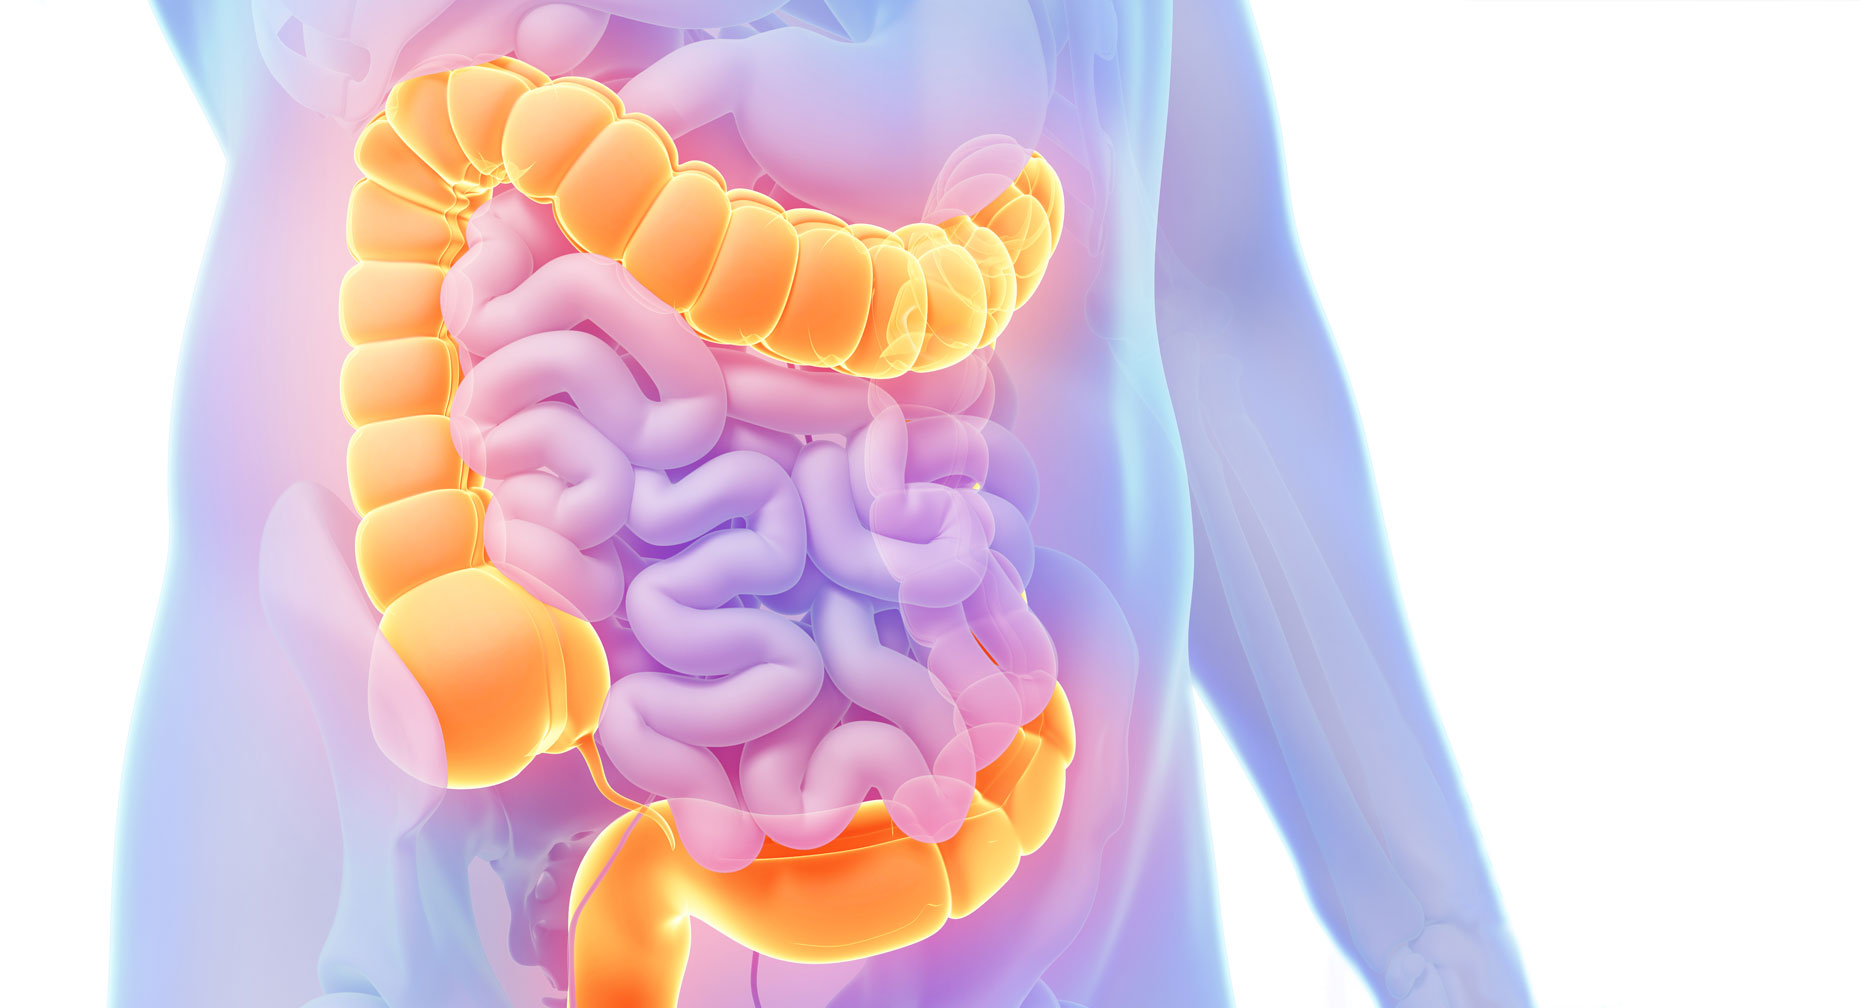 polyps colorectal cancer s early warning system large [ 1860 x 1008 Pixel ]